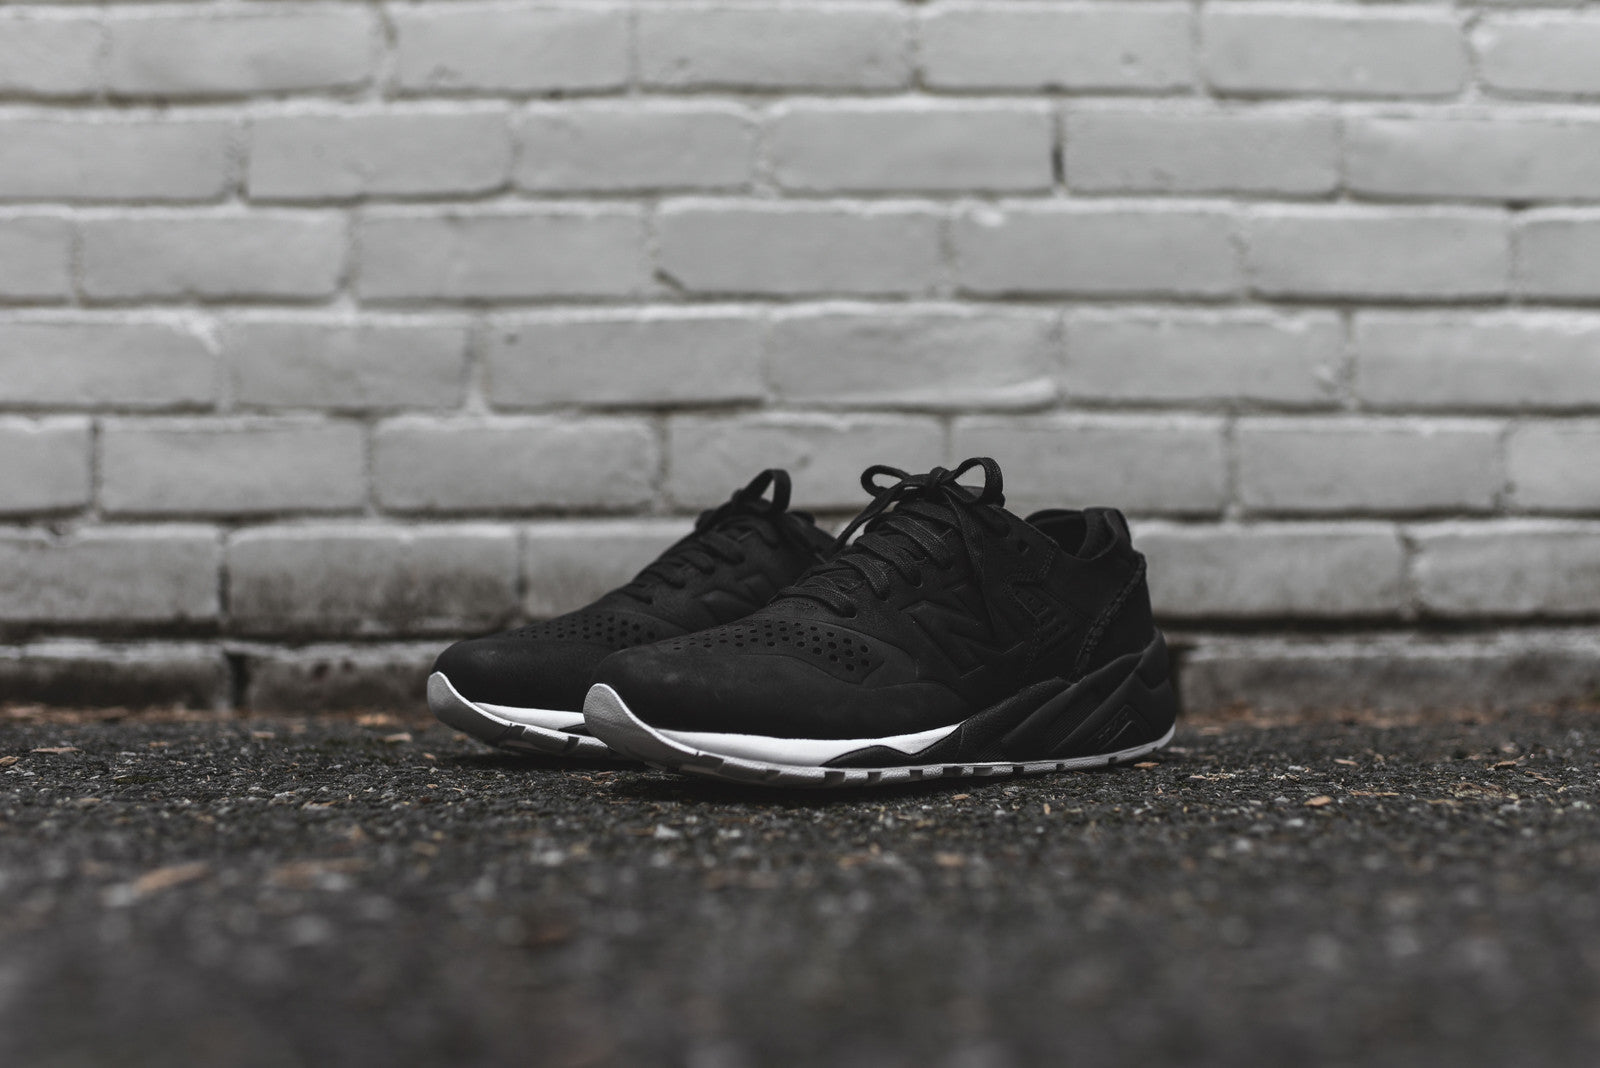 New Balance x Wings + Horns MRT580 Decon - Black